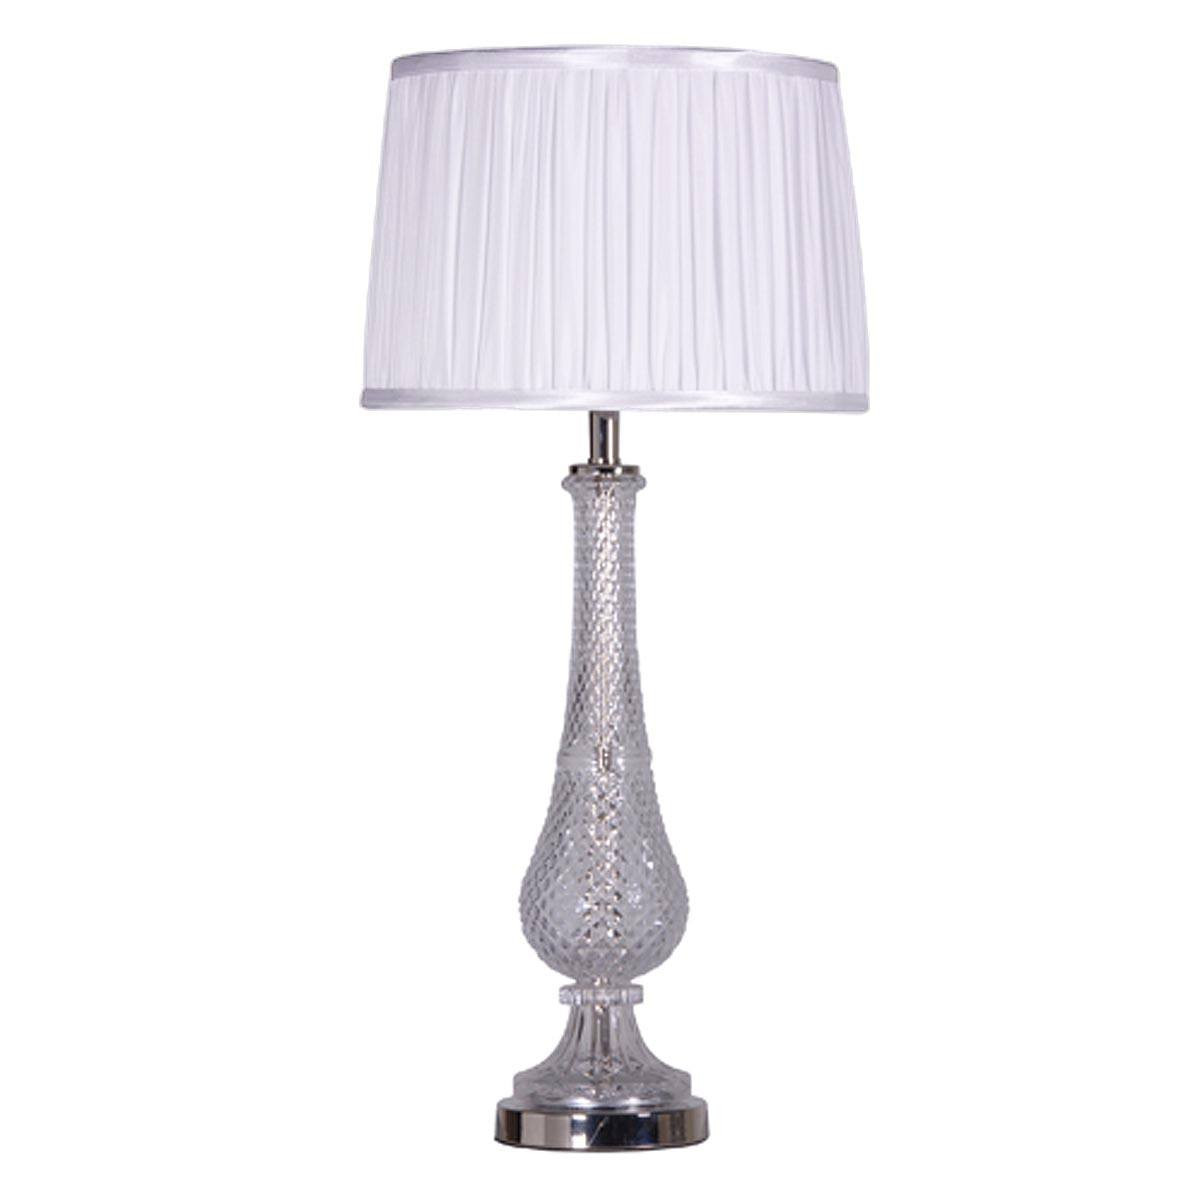 Best ideas about Bedroom Table Lamps . Save or Pin Elo Cut Glass Elegant Table Lamp French Bedroom pany Now.